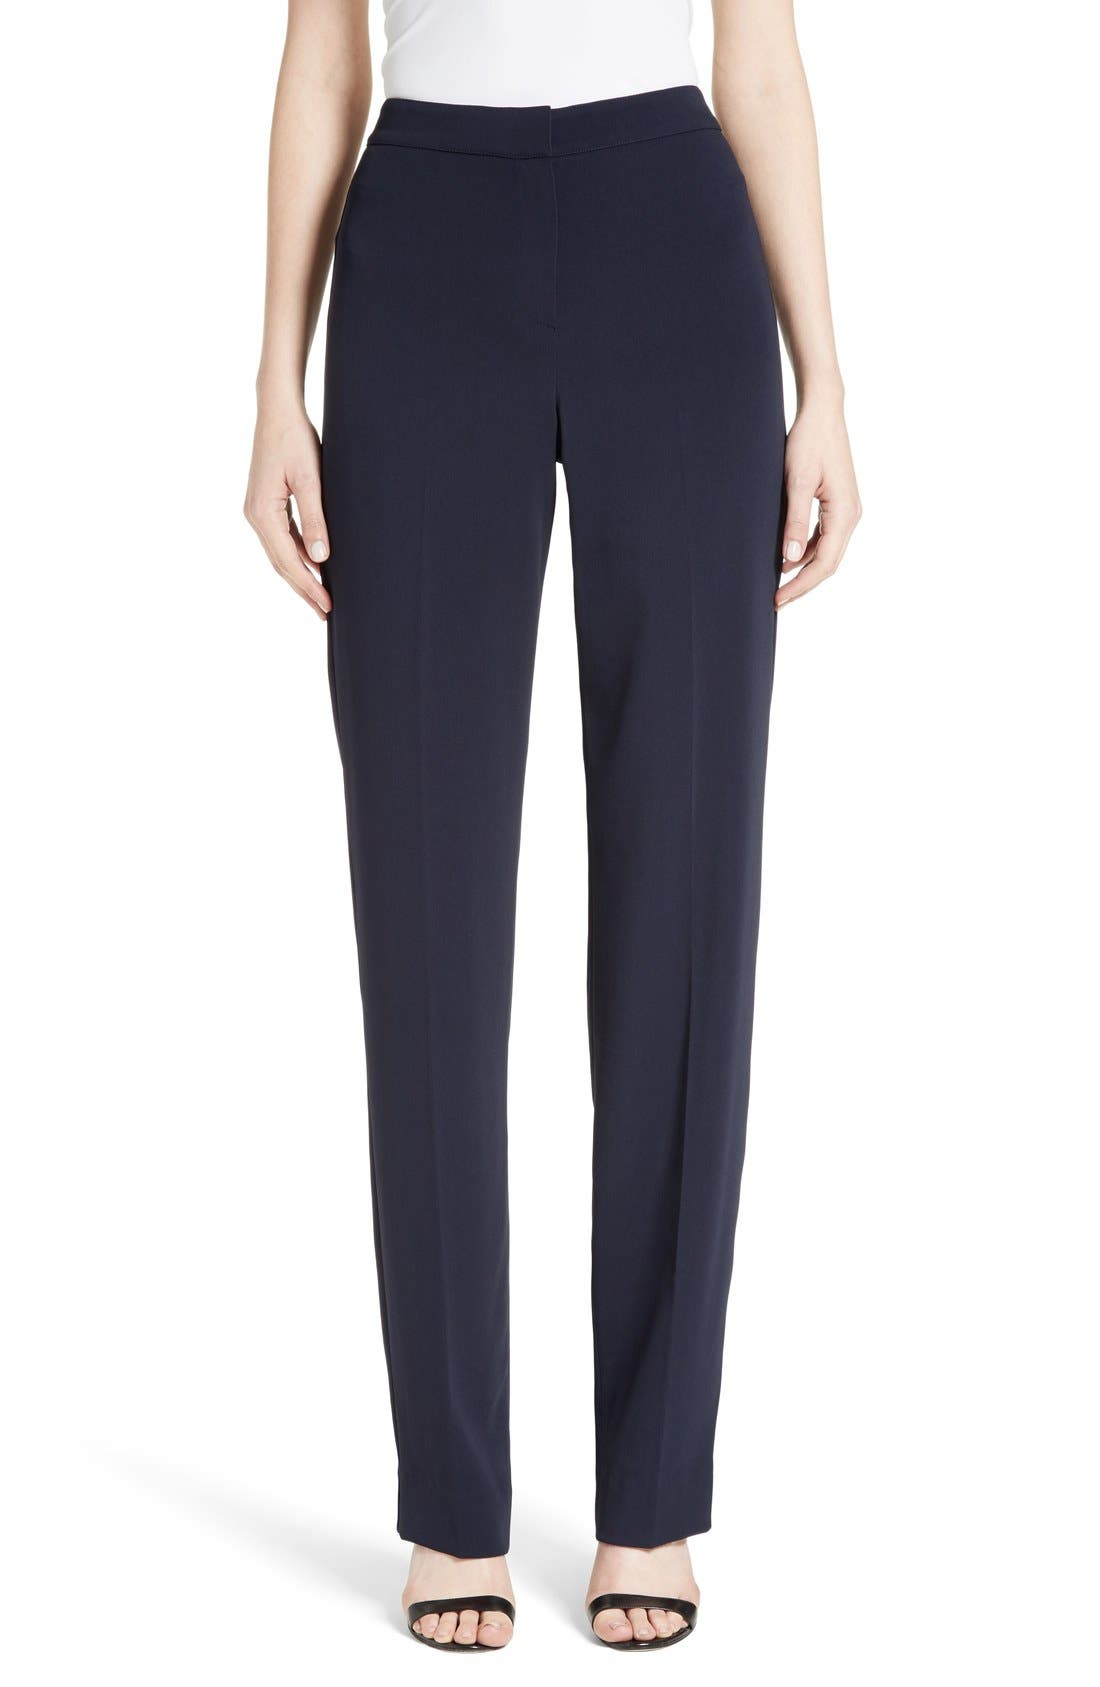 Diana Classic Cady Stretch Pants,                             Main thumbnail 1, color,                             Navy